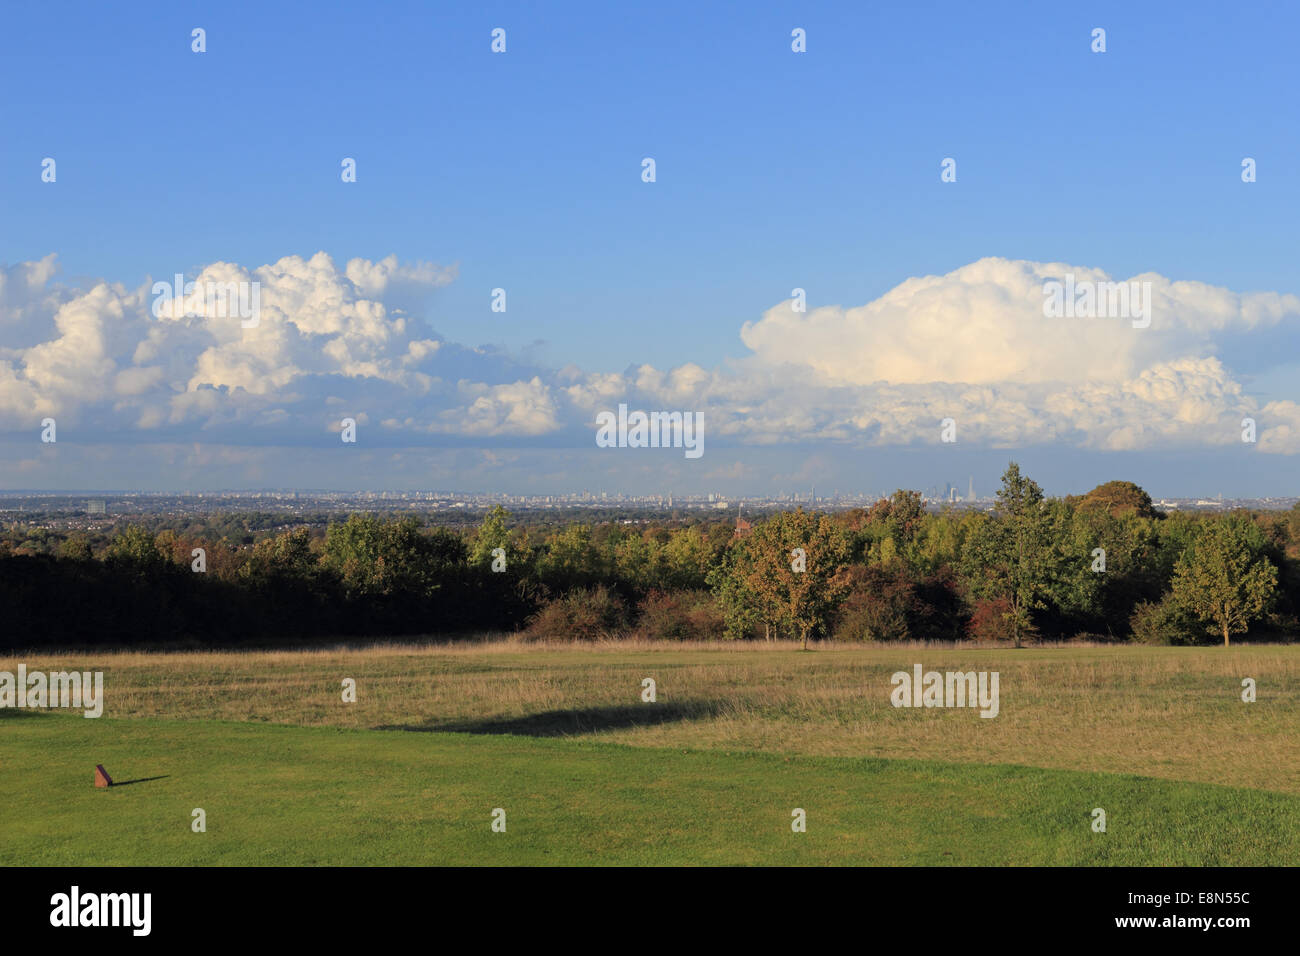 Epsom Downs, Surrey, UK. 11th October 2014. On day of sunshine and showers, a huge cumulonimbus storm cloud formed - Stock Image